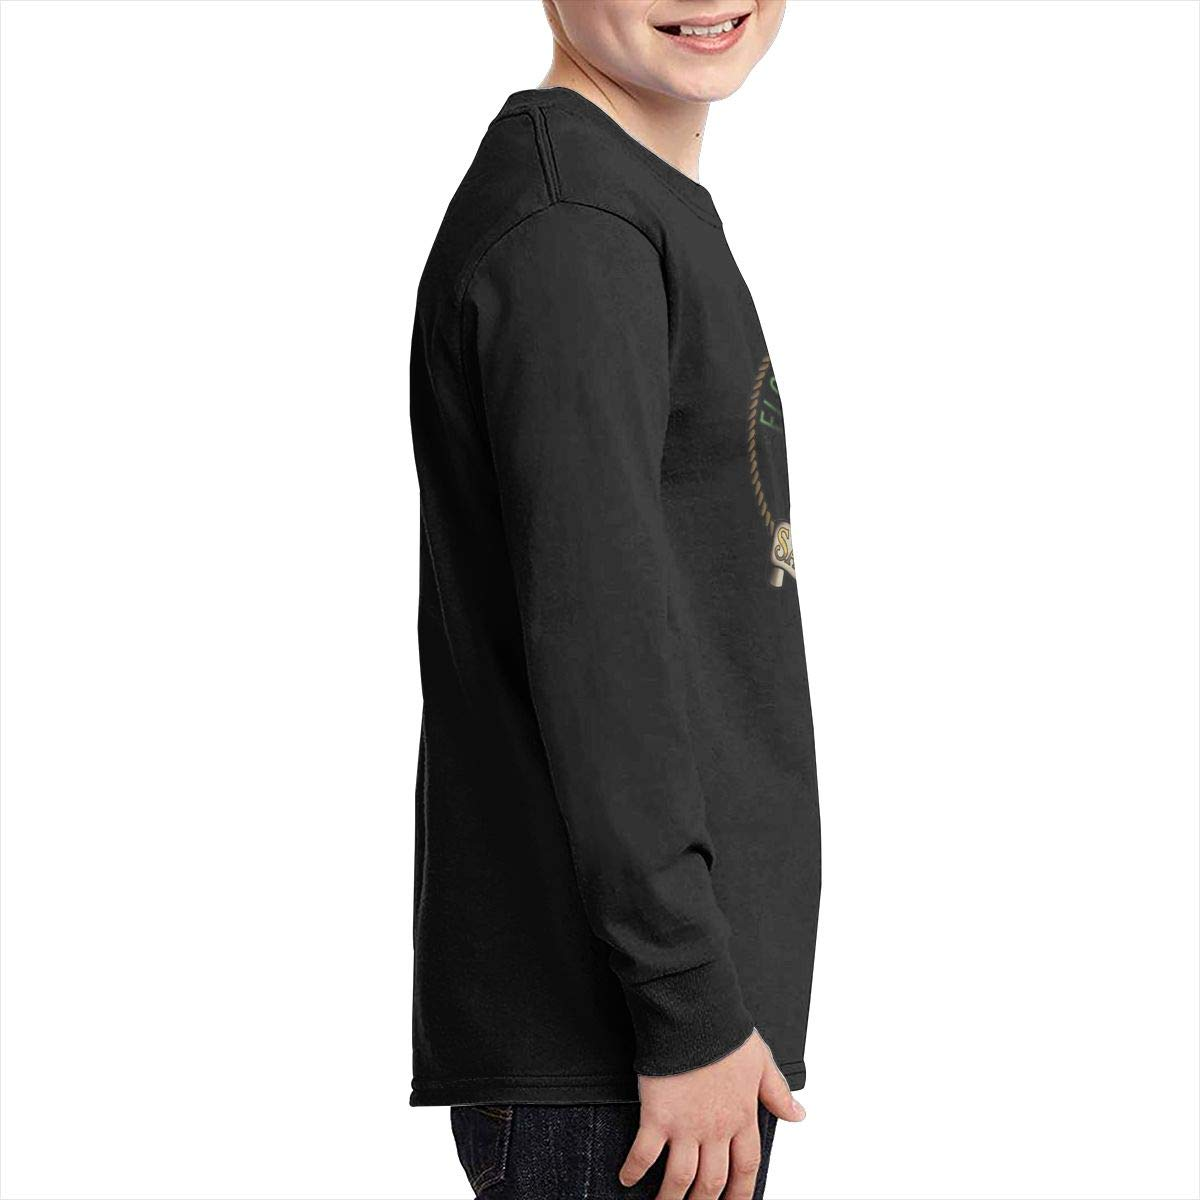 Flogging Molly Boys Fashion Classic Long Sleeve T-Shirt Boy Long Sleeve Cotton Round Neck T-Shirt